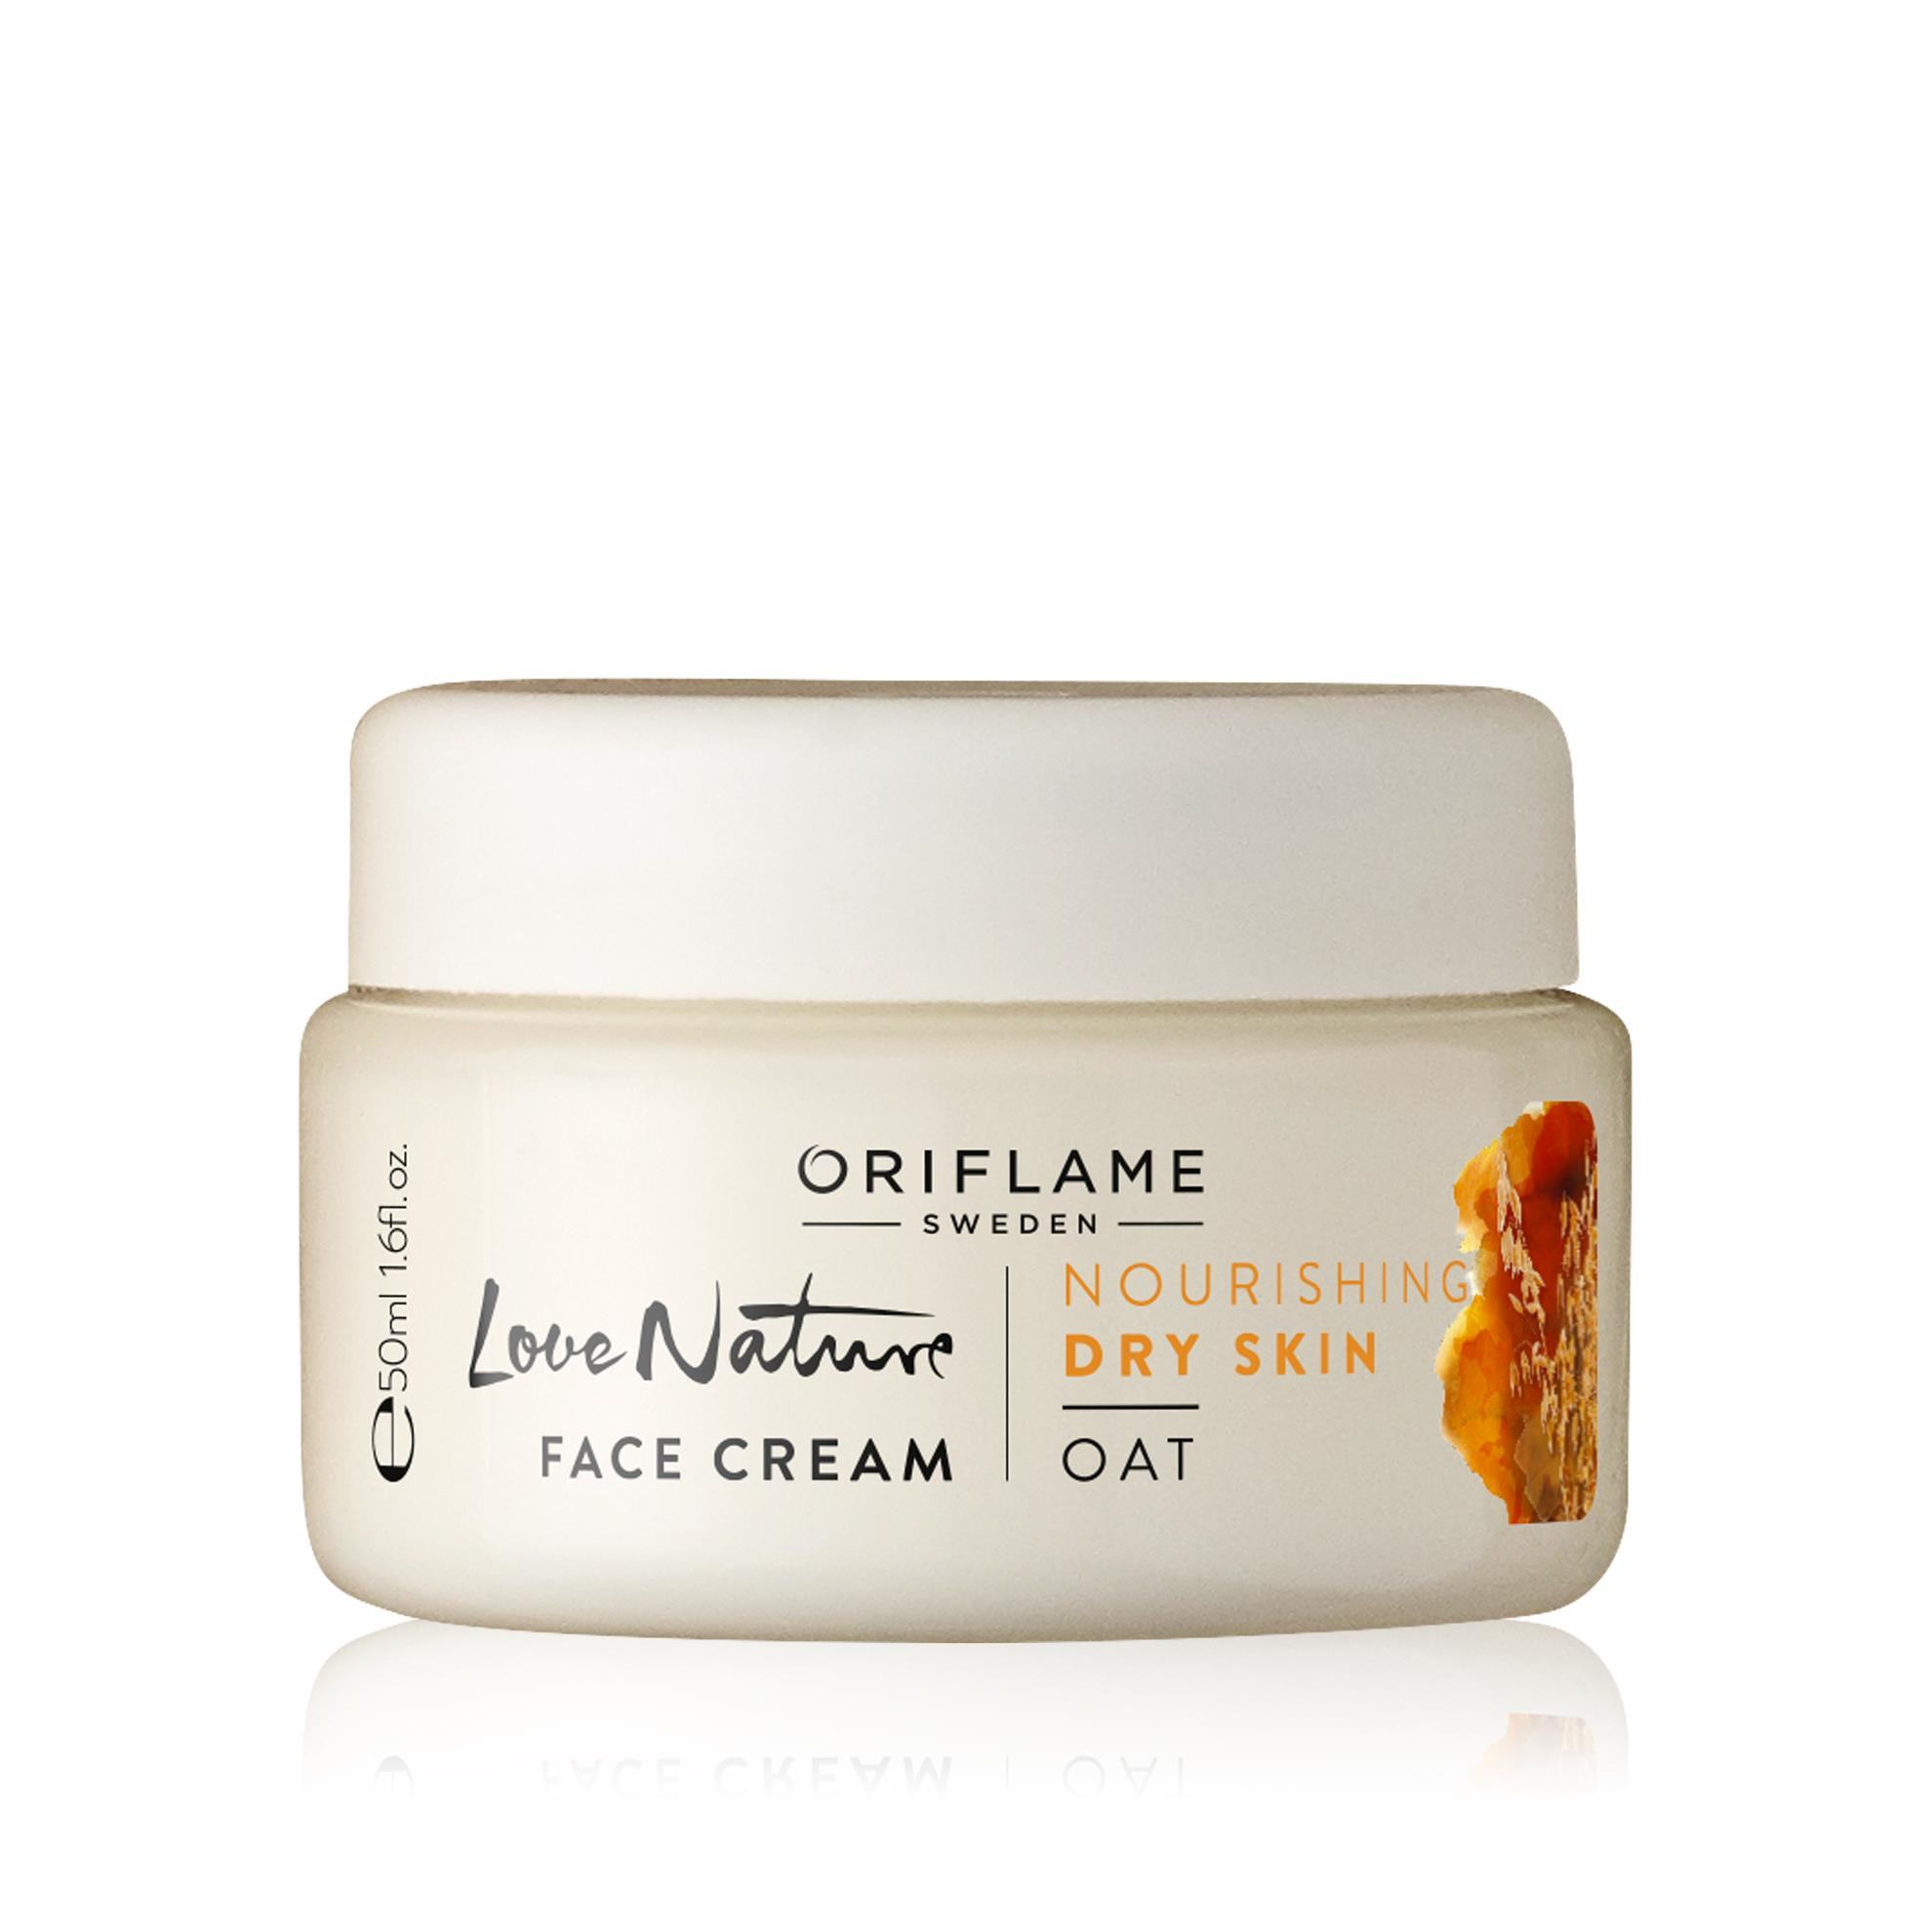 Review Oriflame Love Nature Face Cream Oat Beauty Journal By Sociolla Tje Fuk Night Whitening Original